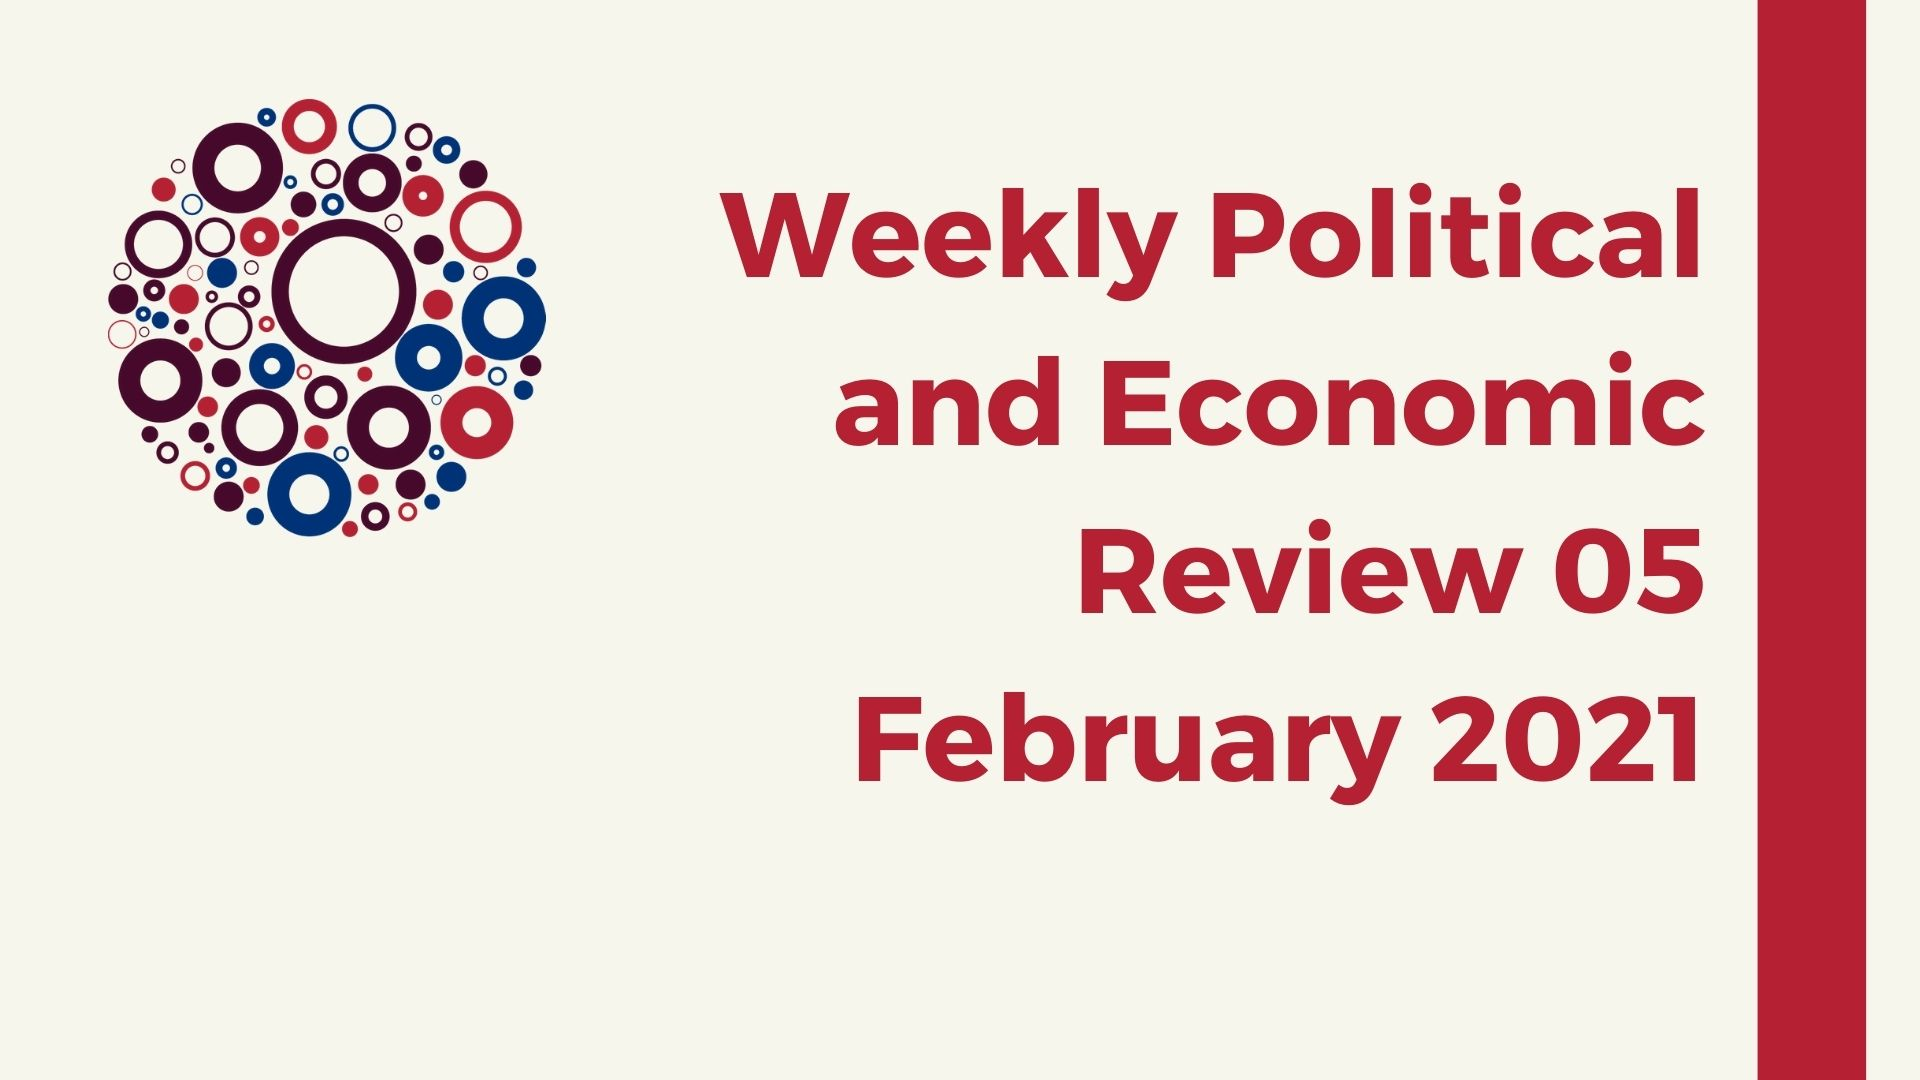 Weekly Political and Economic Review 05 February 2021